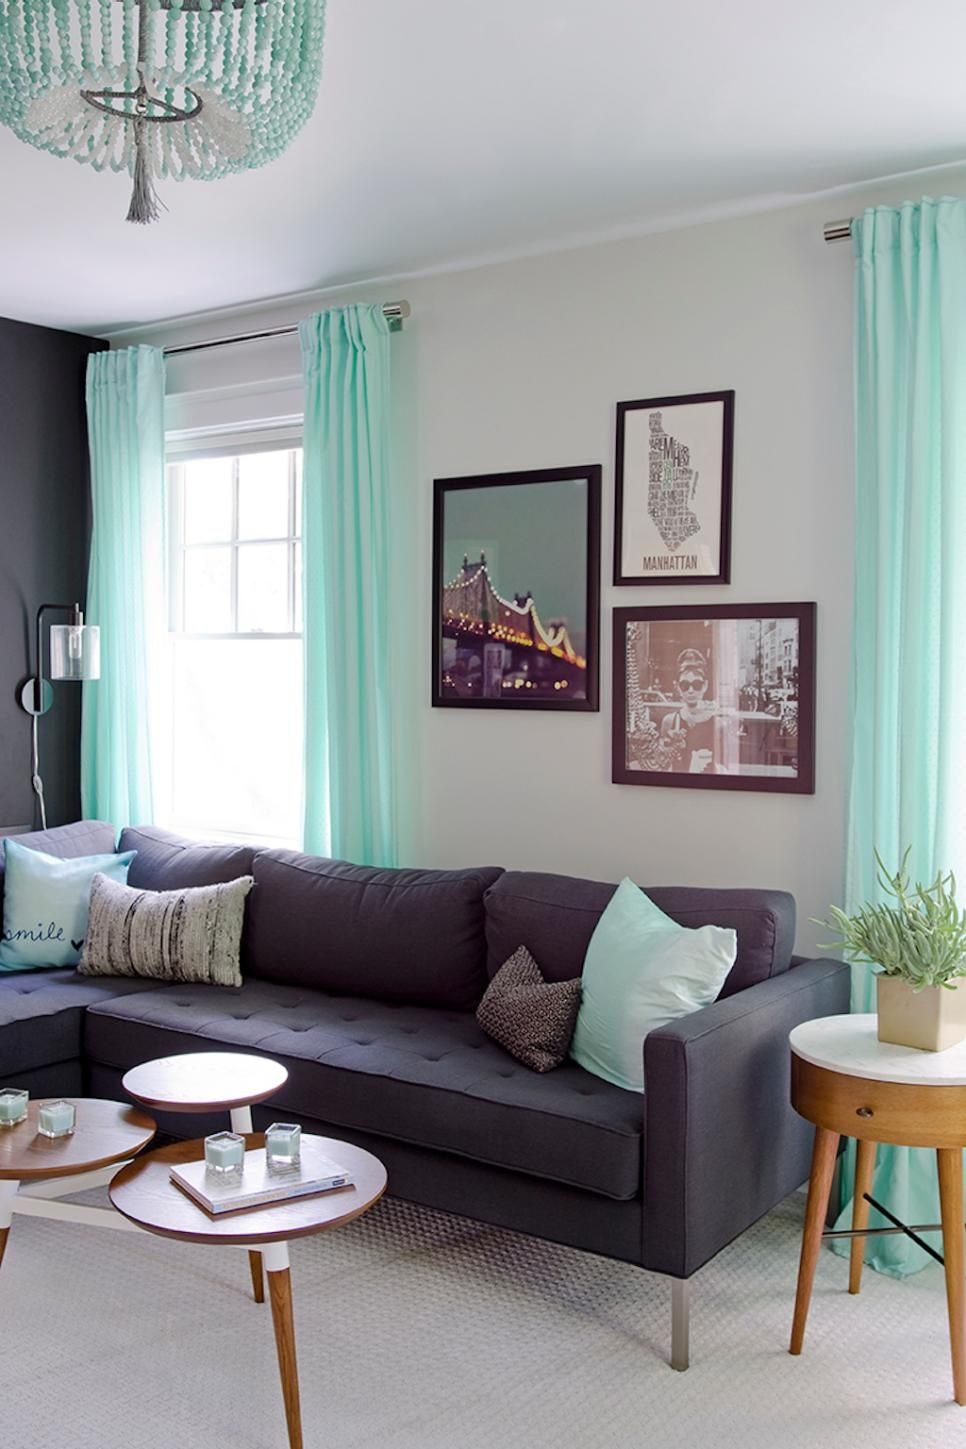 Mint Green Is The Perfect Accent Color For This Black And White Living Room A Dark G Green Furniture Living Room Living Room Turquoise Contemporary Home Decor